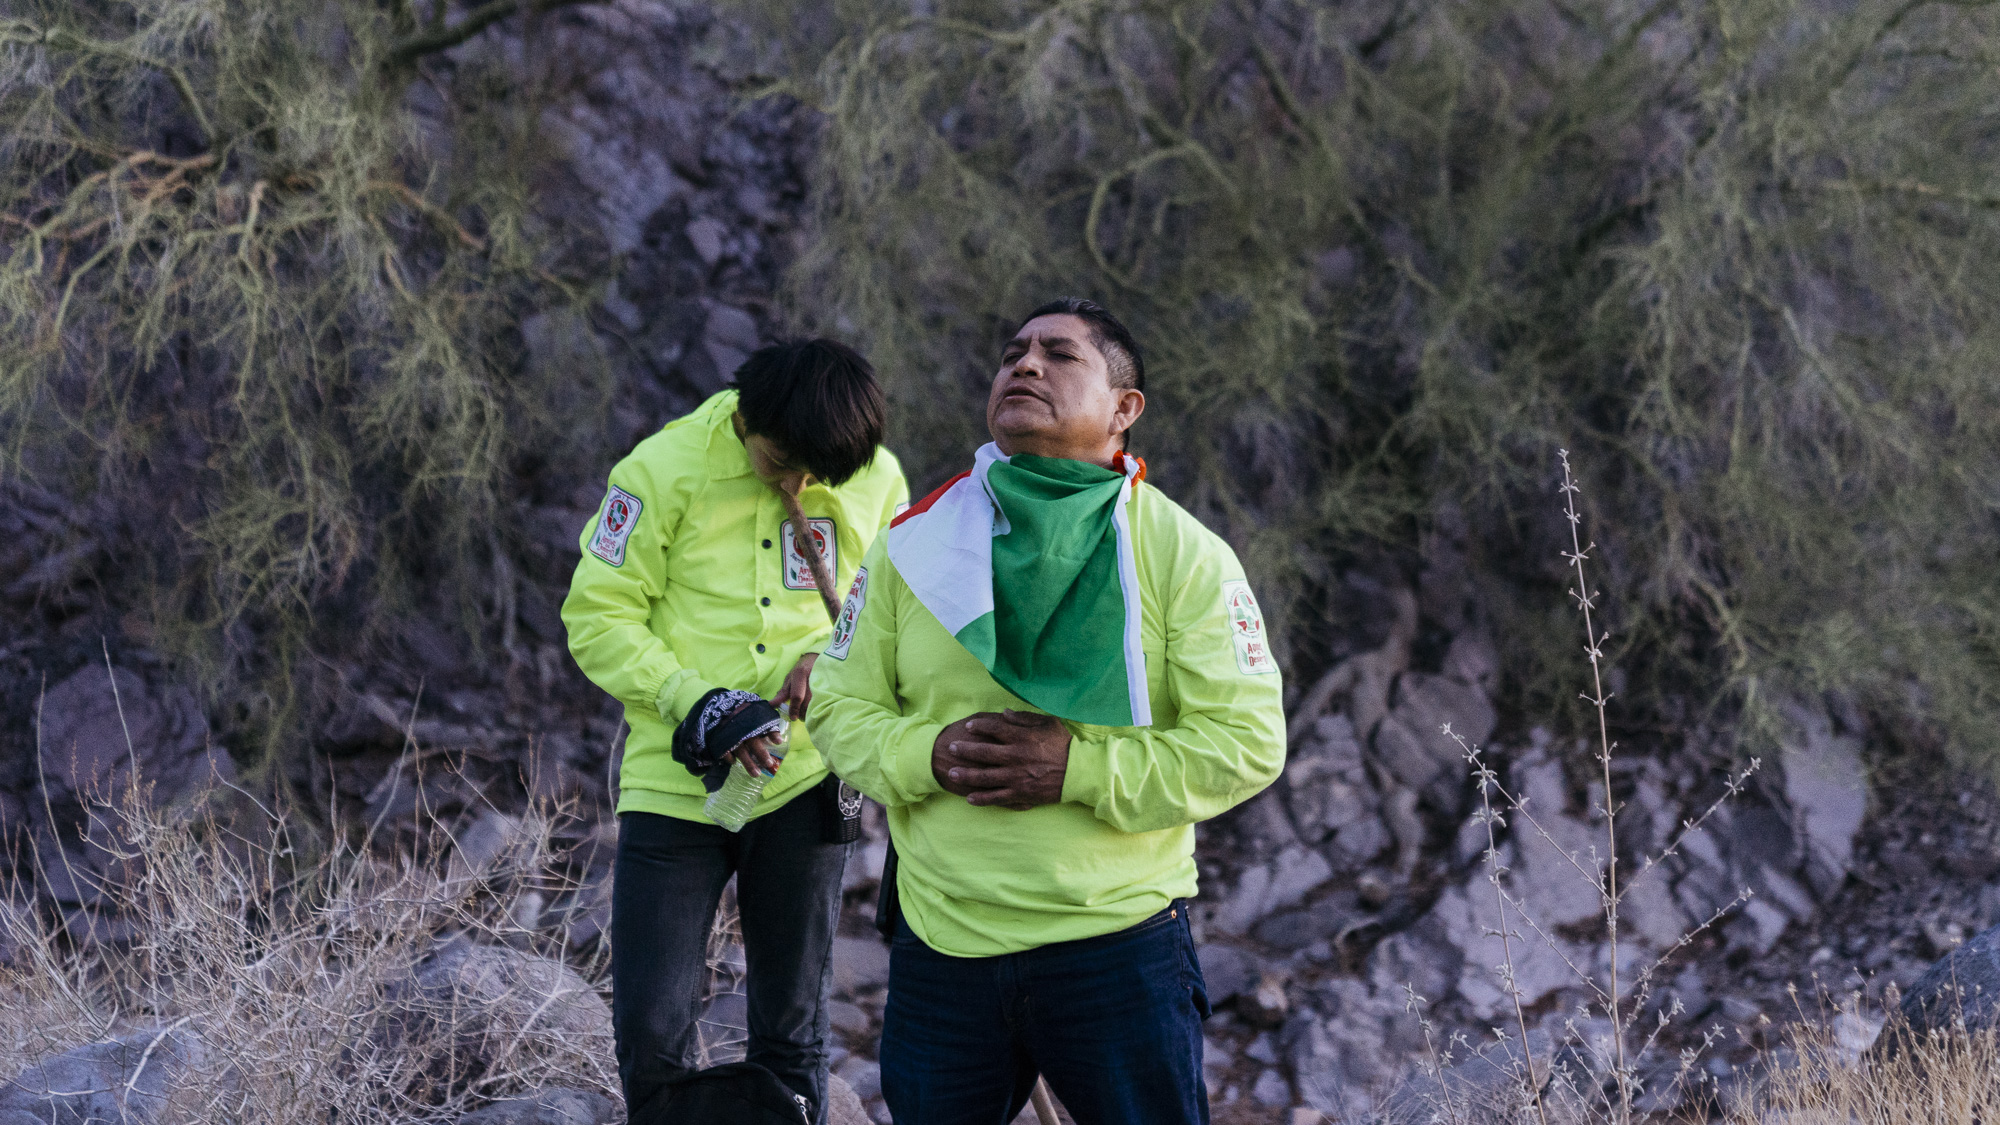 IMAGE CAPTION:  Angel Martinez (center) and 14 year old Jamie Martinez pray for their safety and the safe passage of all migrants in transit before beginning a sunrise to sunset desert search for lost and deceased migrants.